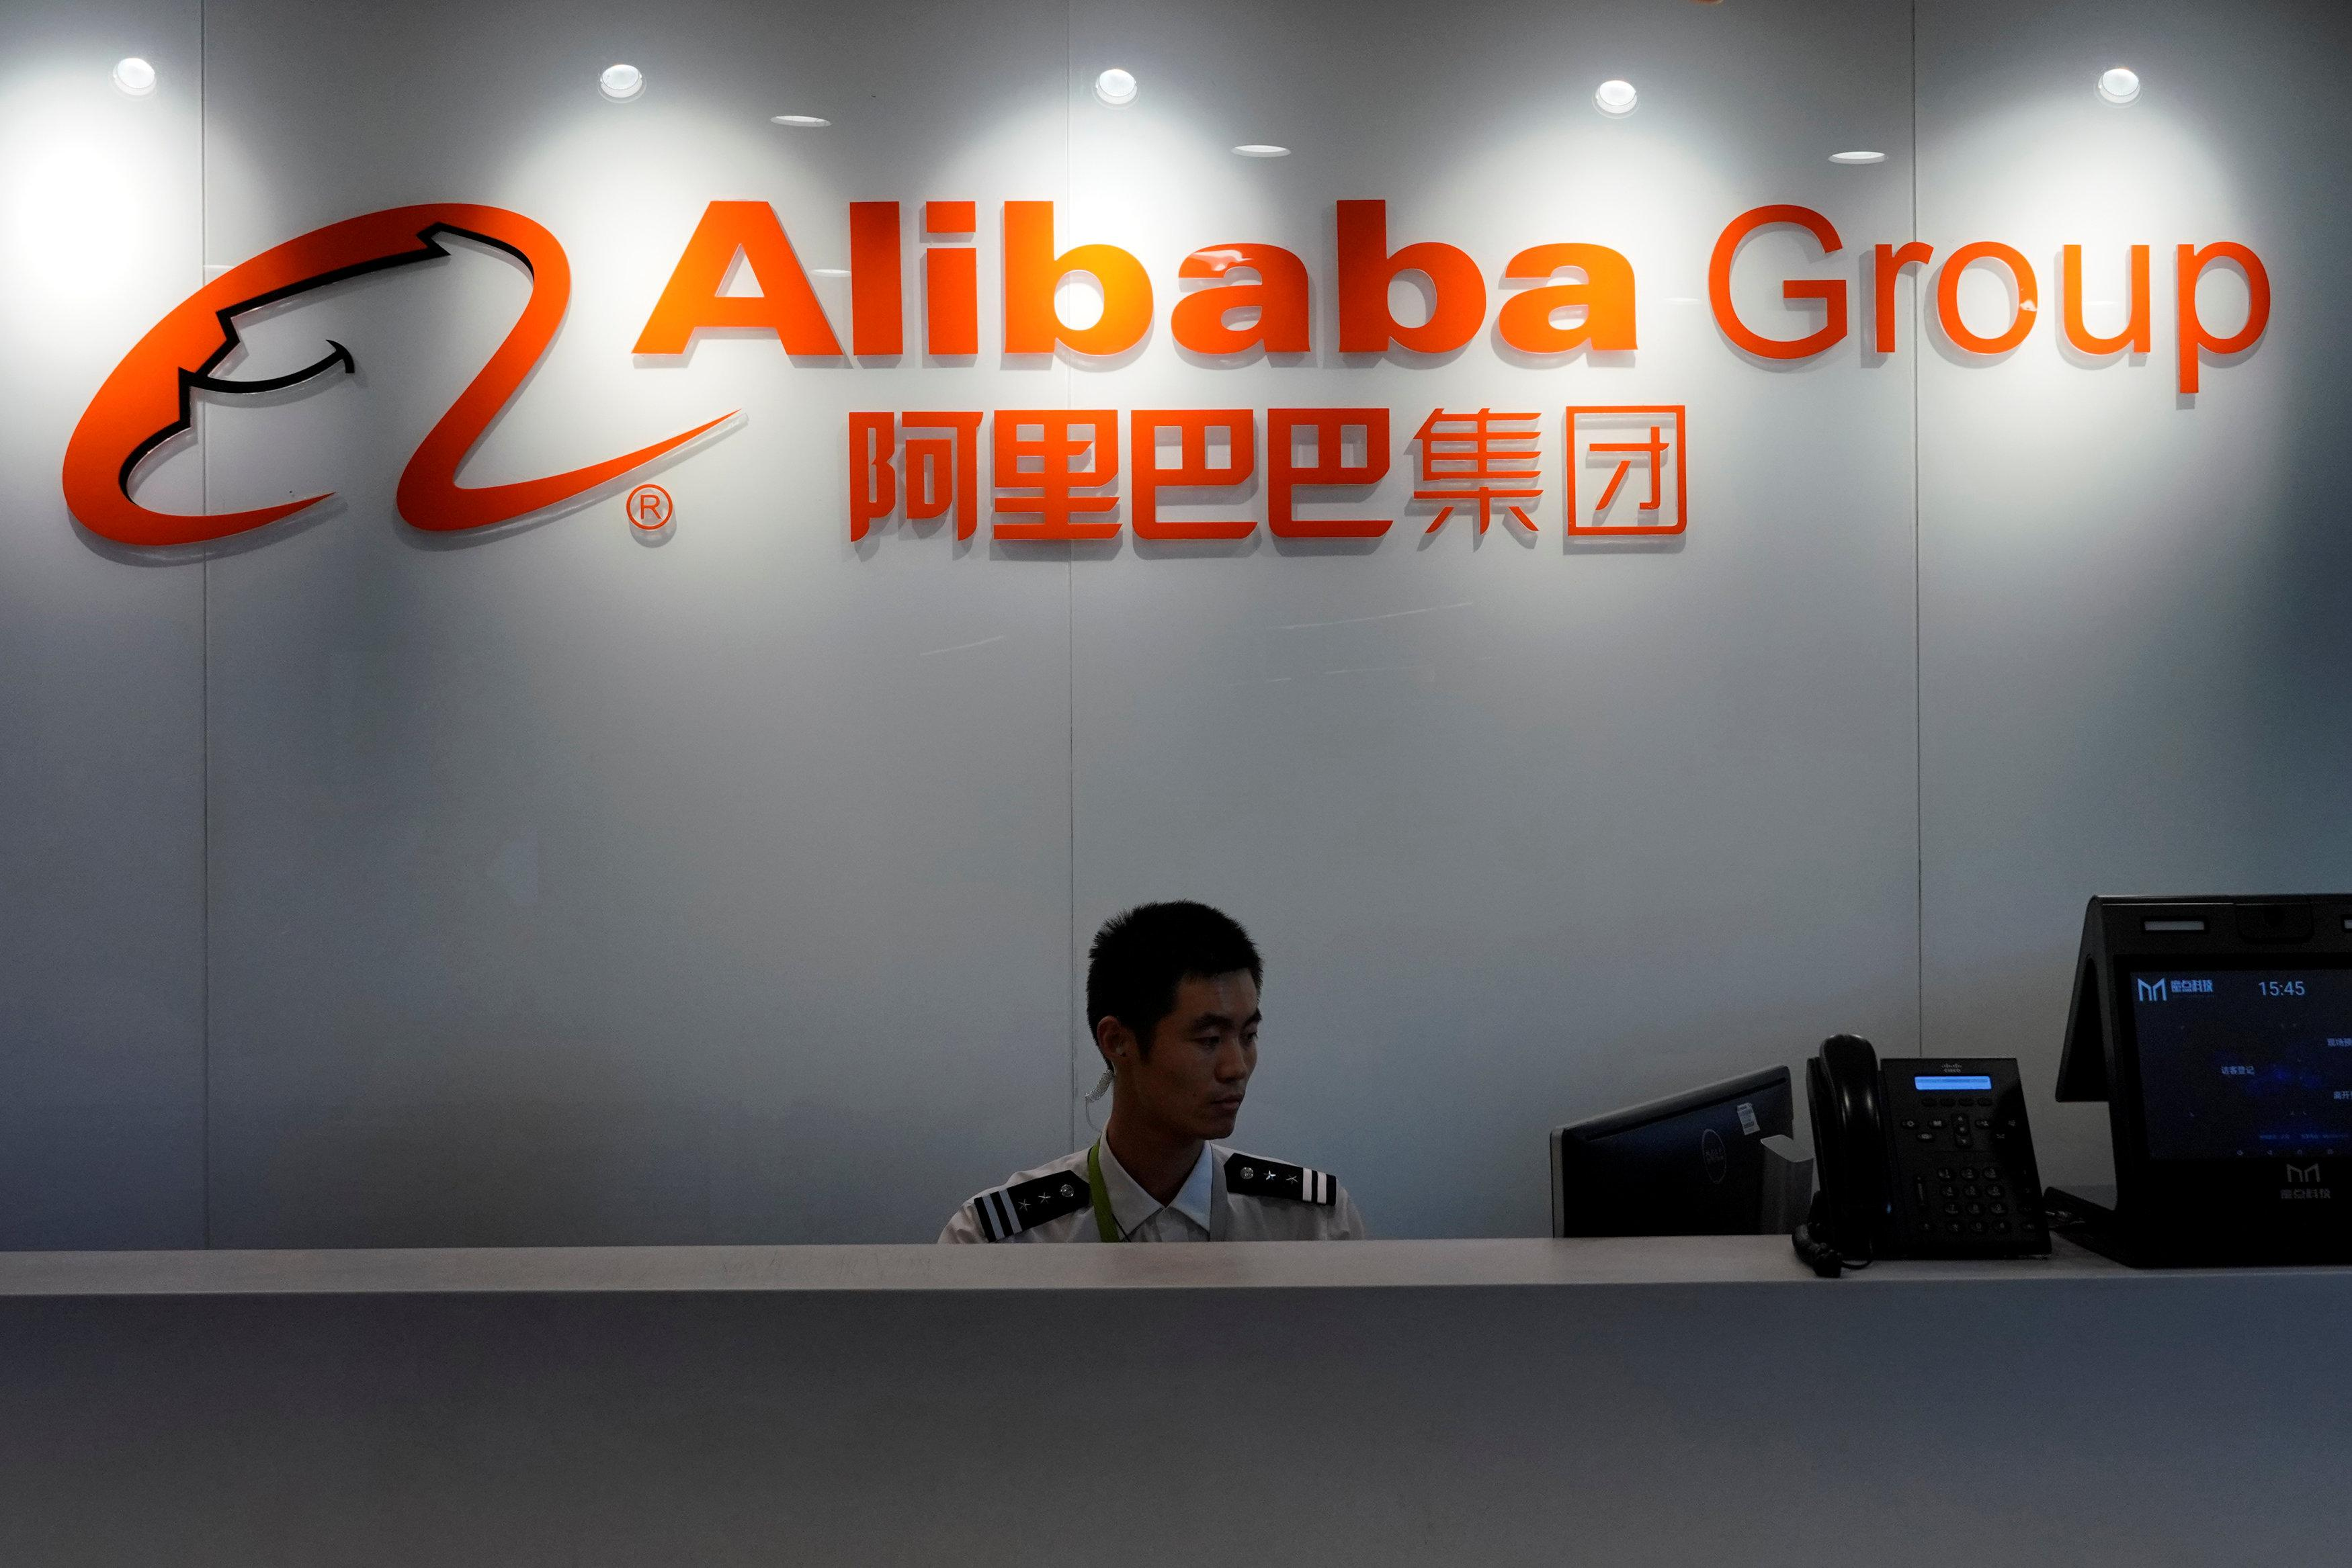 Ding! Alibaba office app fuels backlash among some Chinese workers